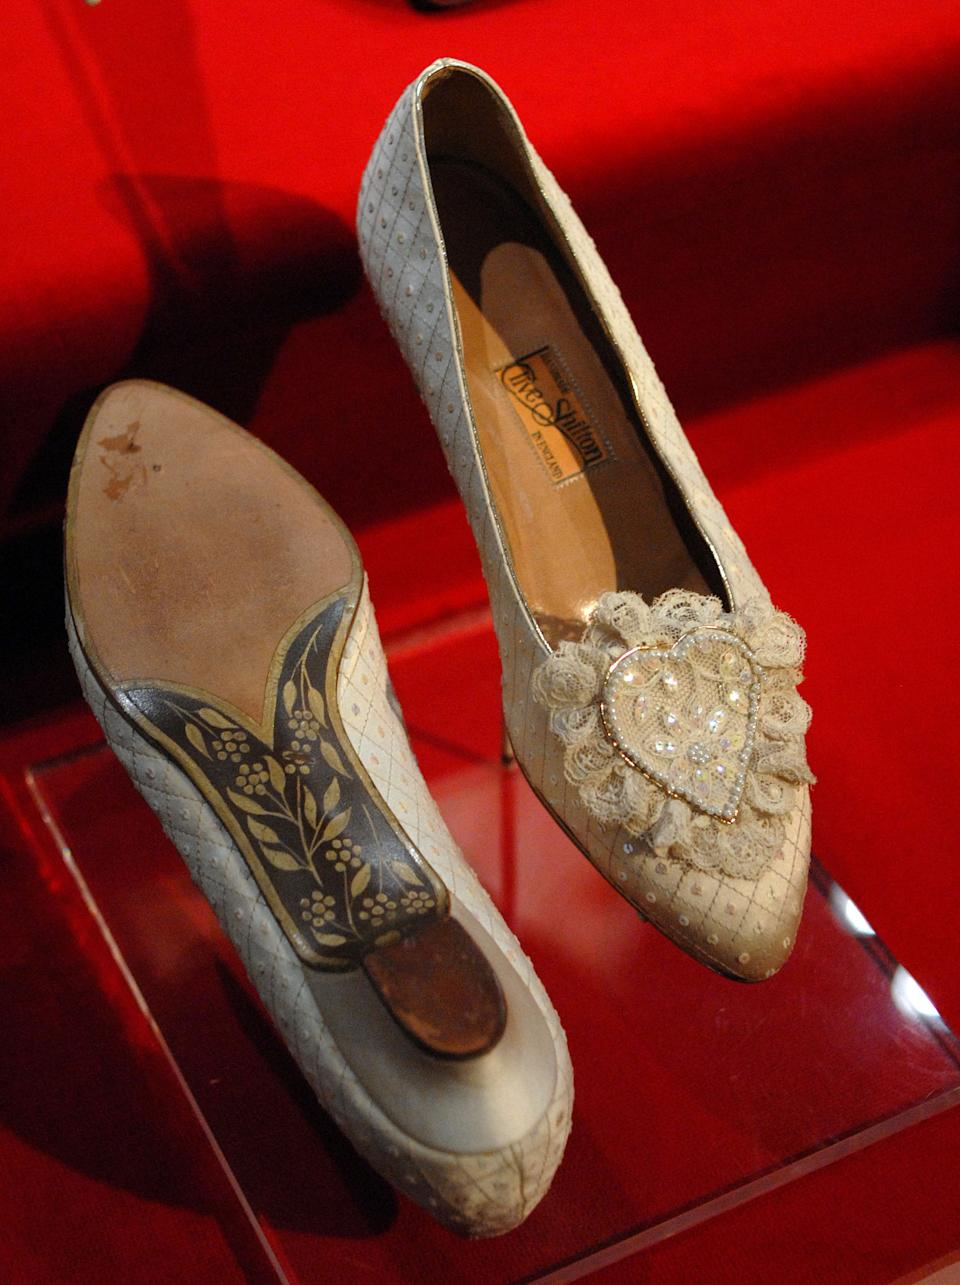 PHILADELPHIA - OCTOBER 1:  Princess Diana's wedding slippers are displayed at a preview of the traveling